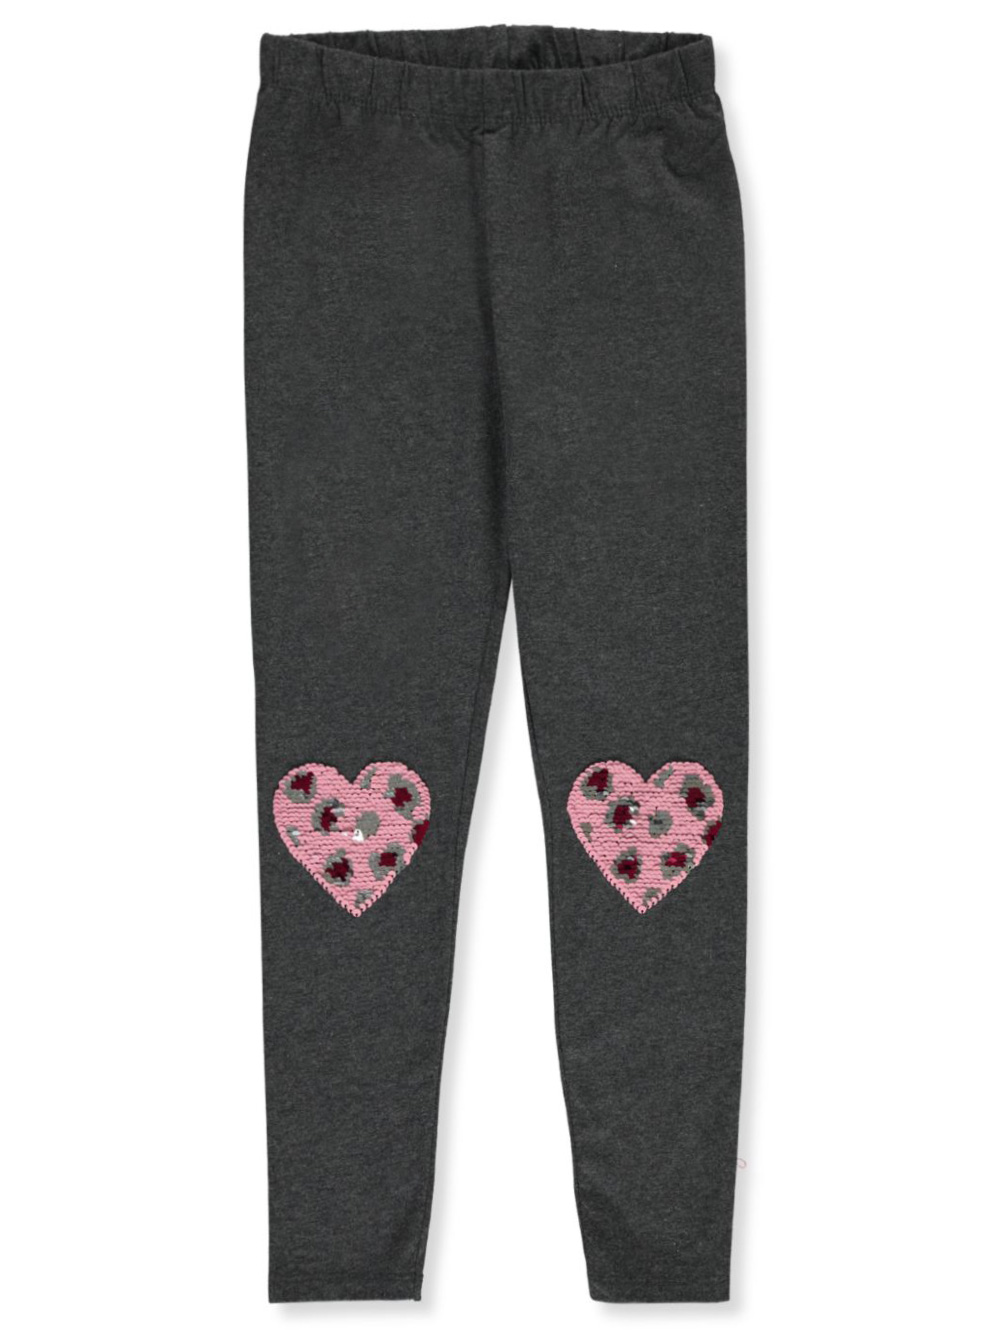 Girls Charcoal Leggings